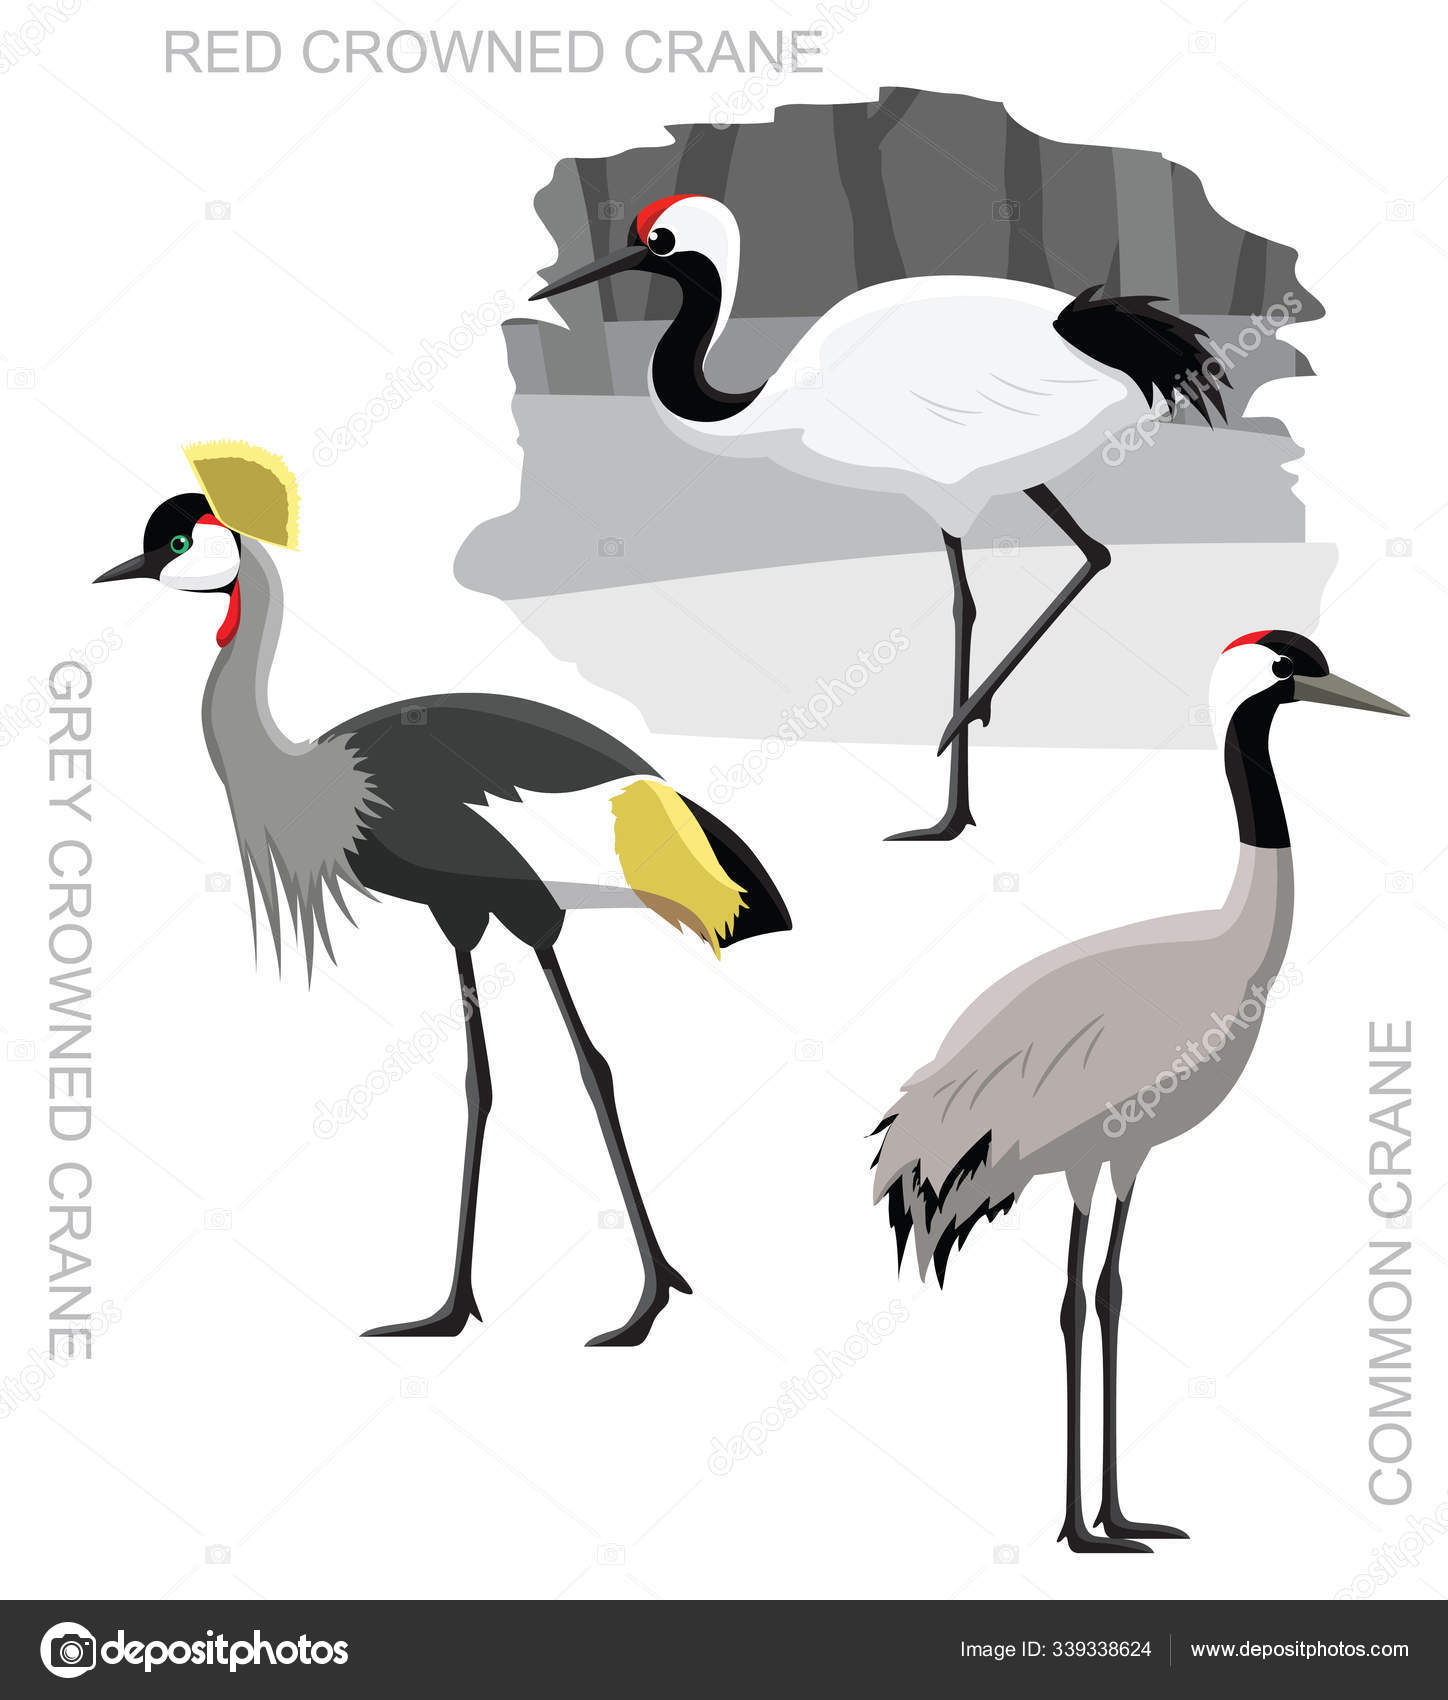 Grey Crowned Crane Stock Vectors Royalty Free Grey Crowned Crane Illustrations Depositphotos It is a highly aquatic species that feeds in deeper water than other cranes. https depositphotos com 339338624 stock illustration bird crane set cartoon vector html